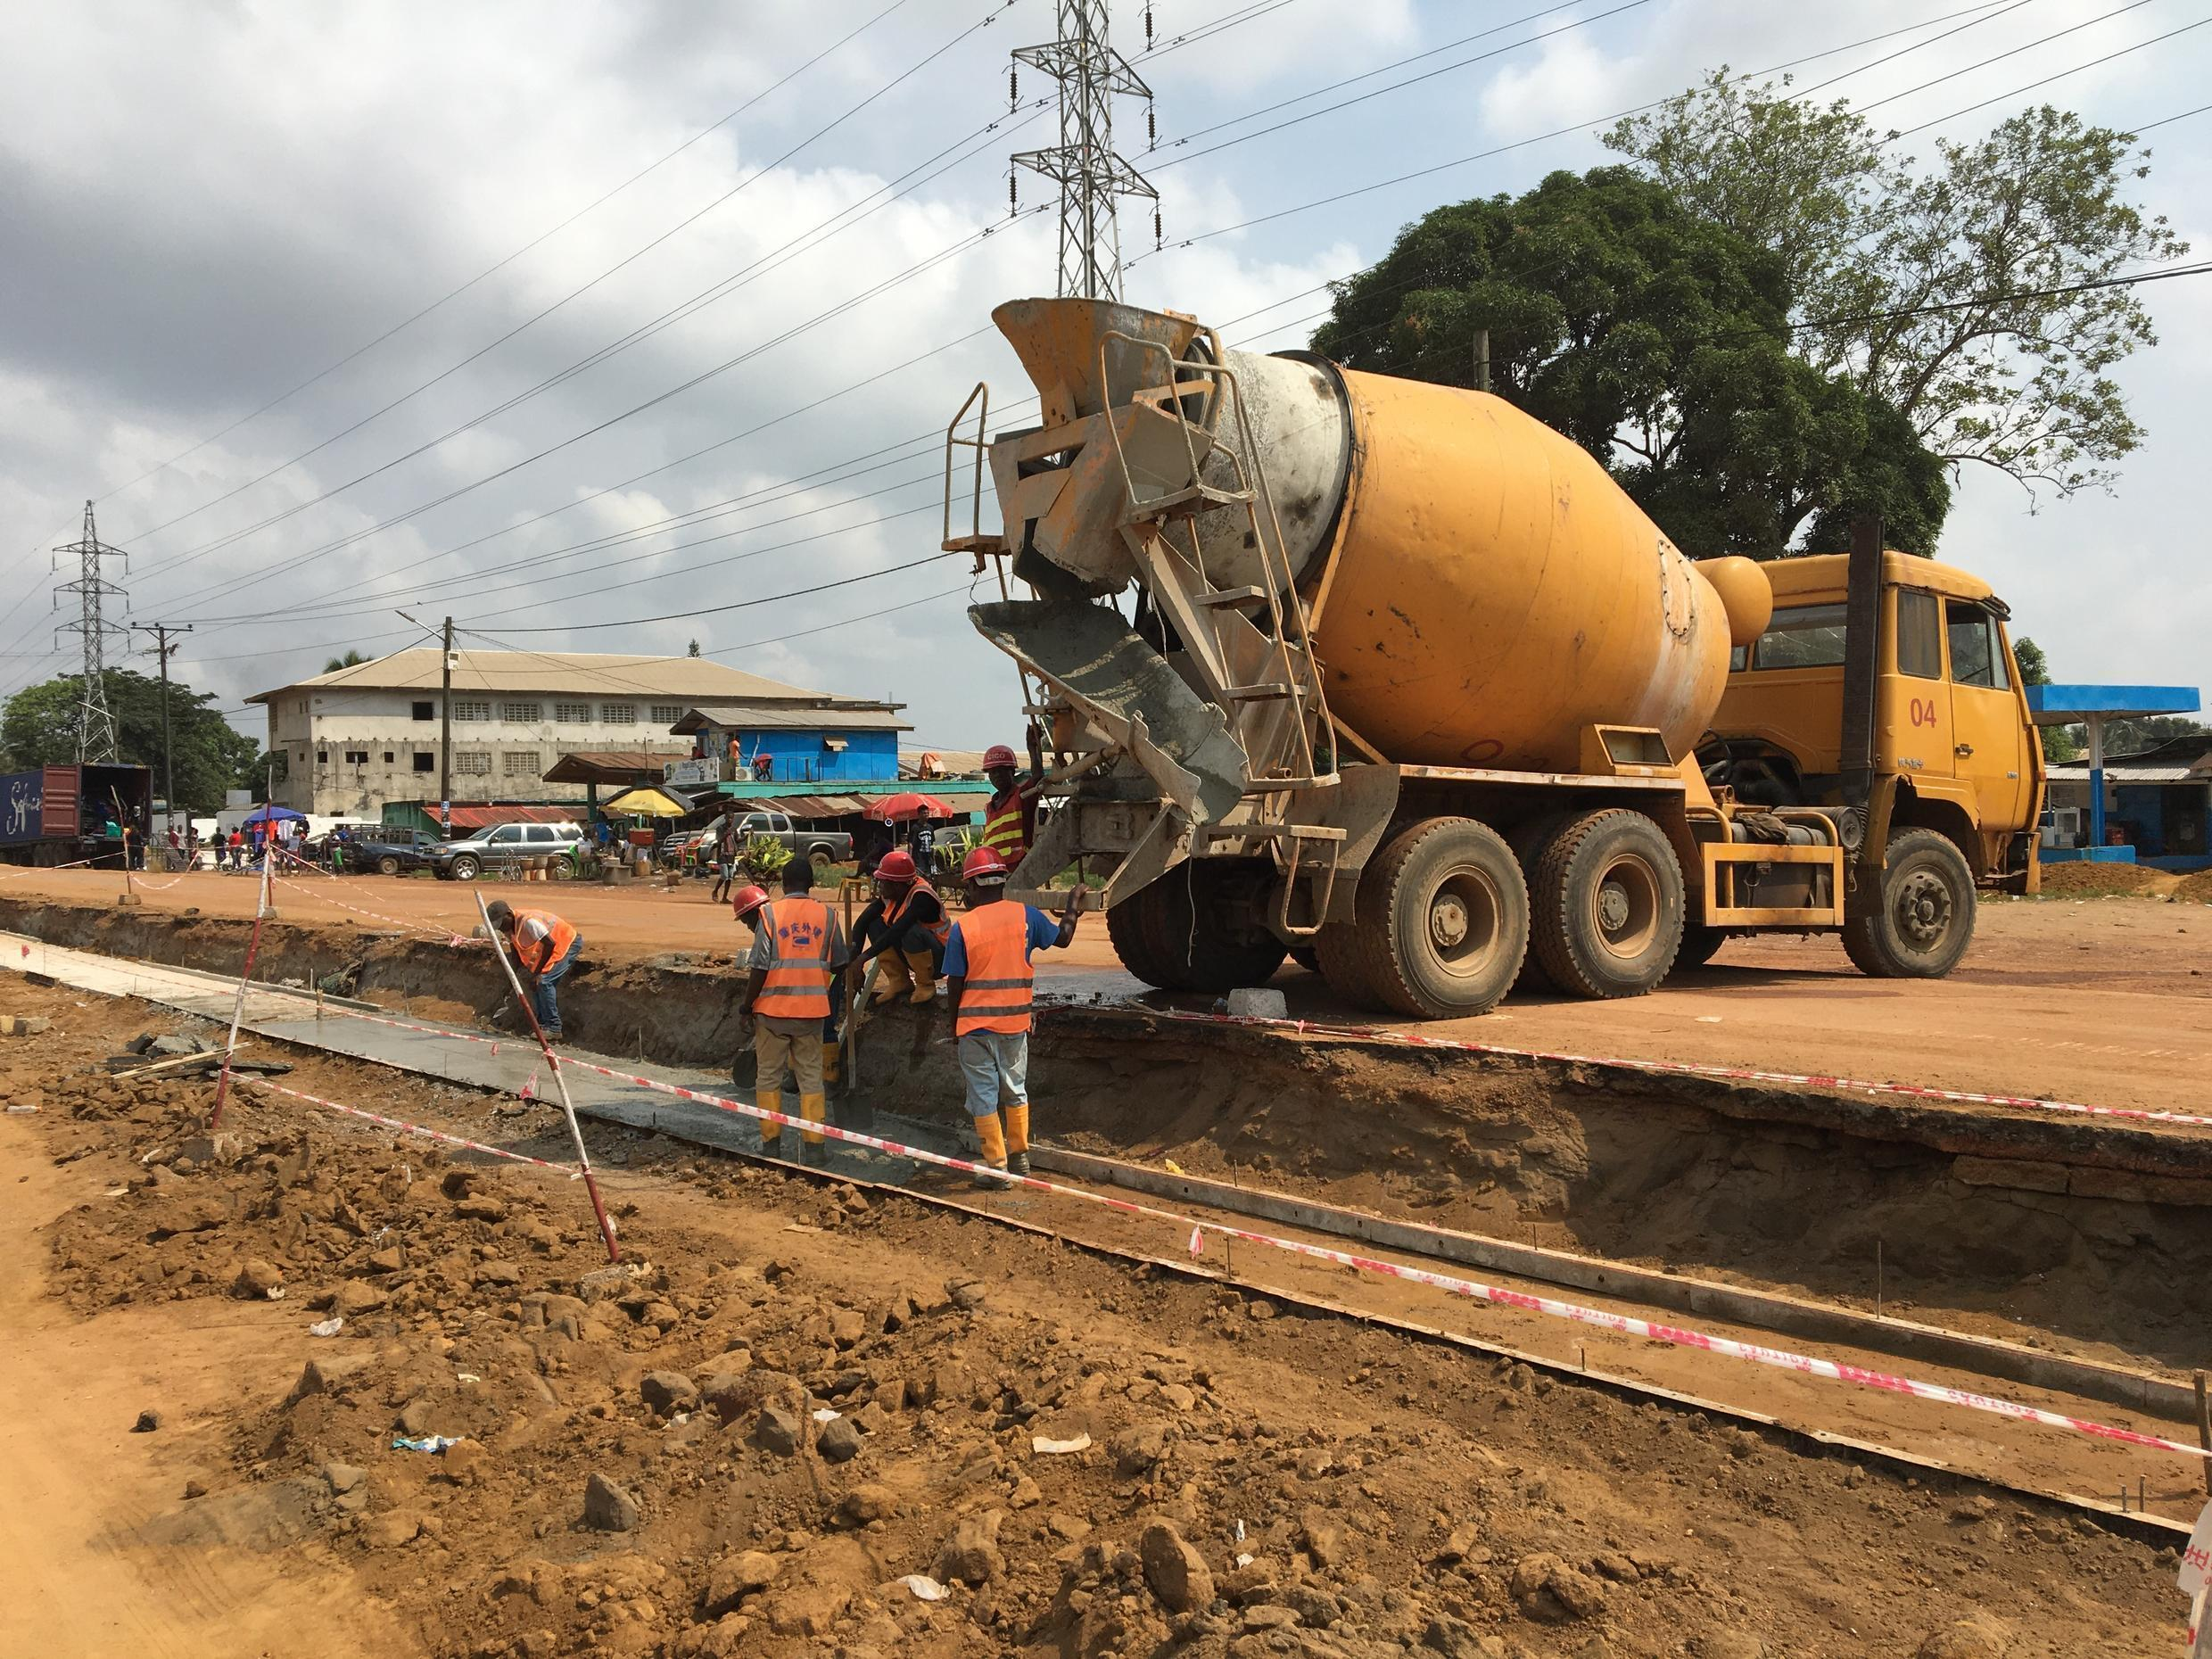 A new road is currently being constructed, connecting the communities of Redlight, Paynesville to ELWA Junction, on the outskirts of Monrovia, with CICO, a Chinese construction and engineering firm, in charge of works.